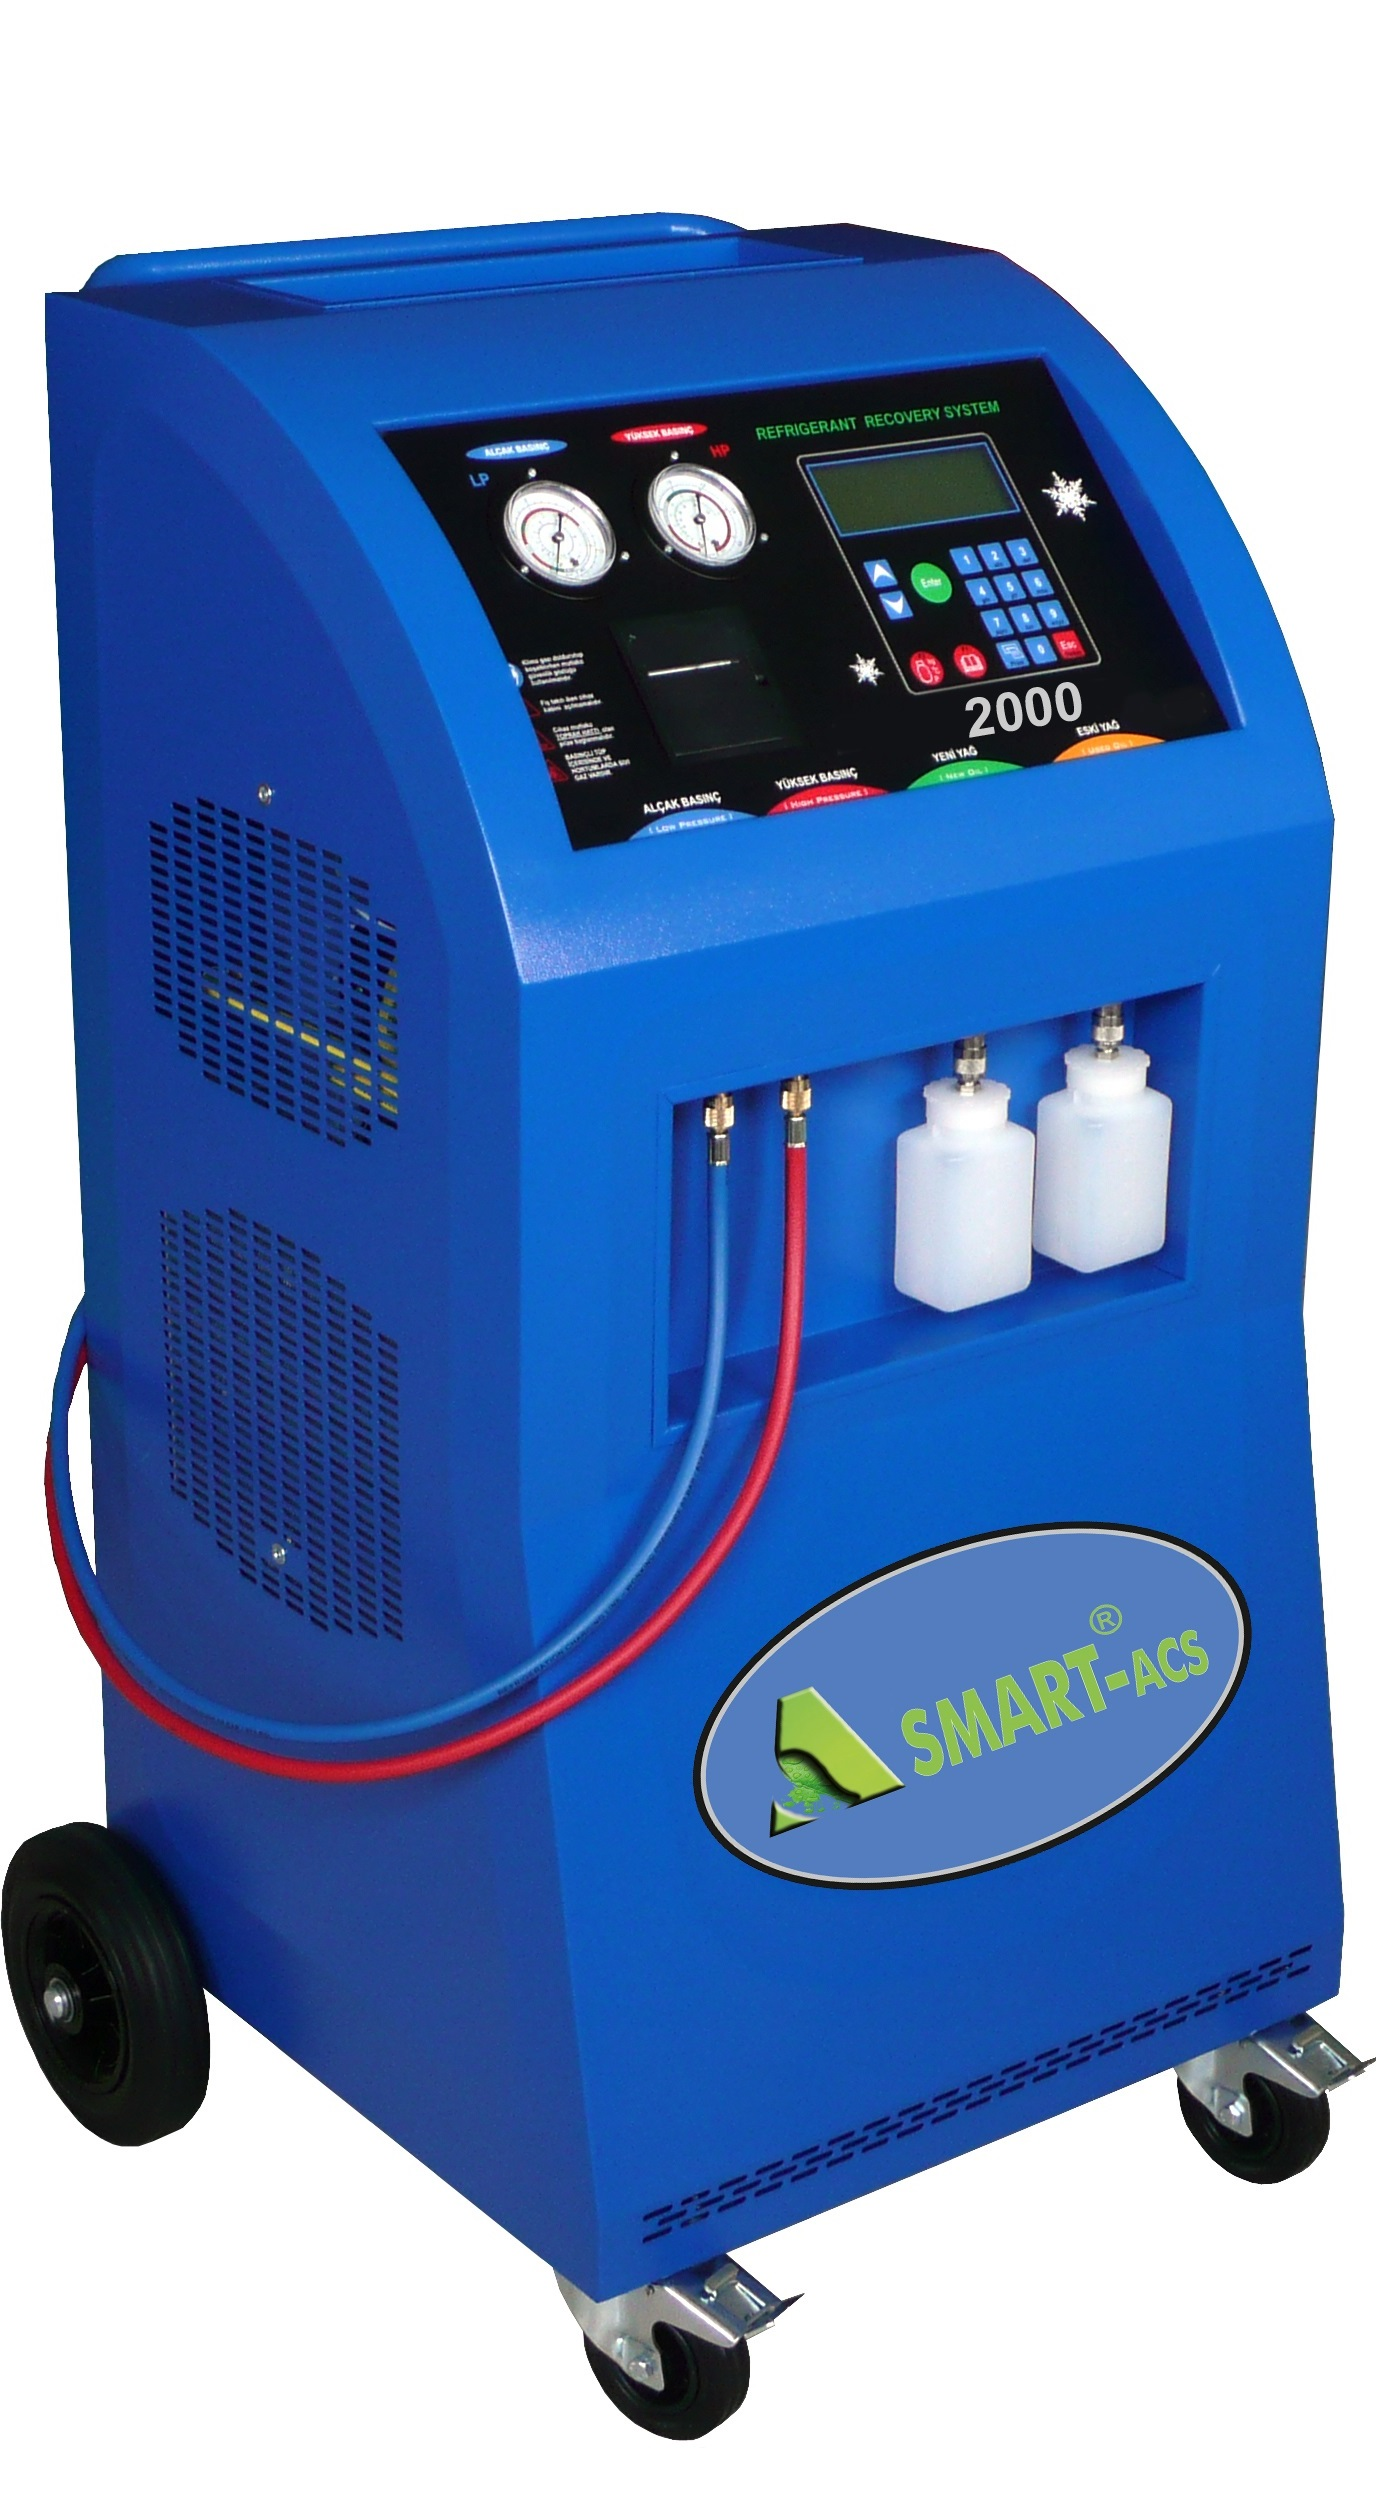 air conditioning machine for cars. automotive air conditioning refrigerant recovery, recycling, and recharging machine for cars